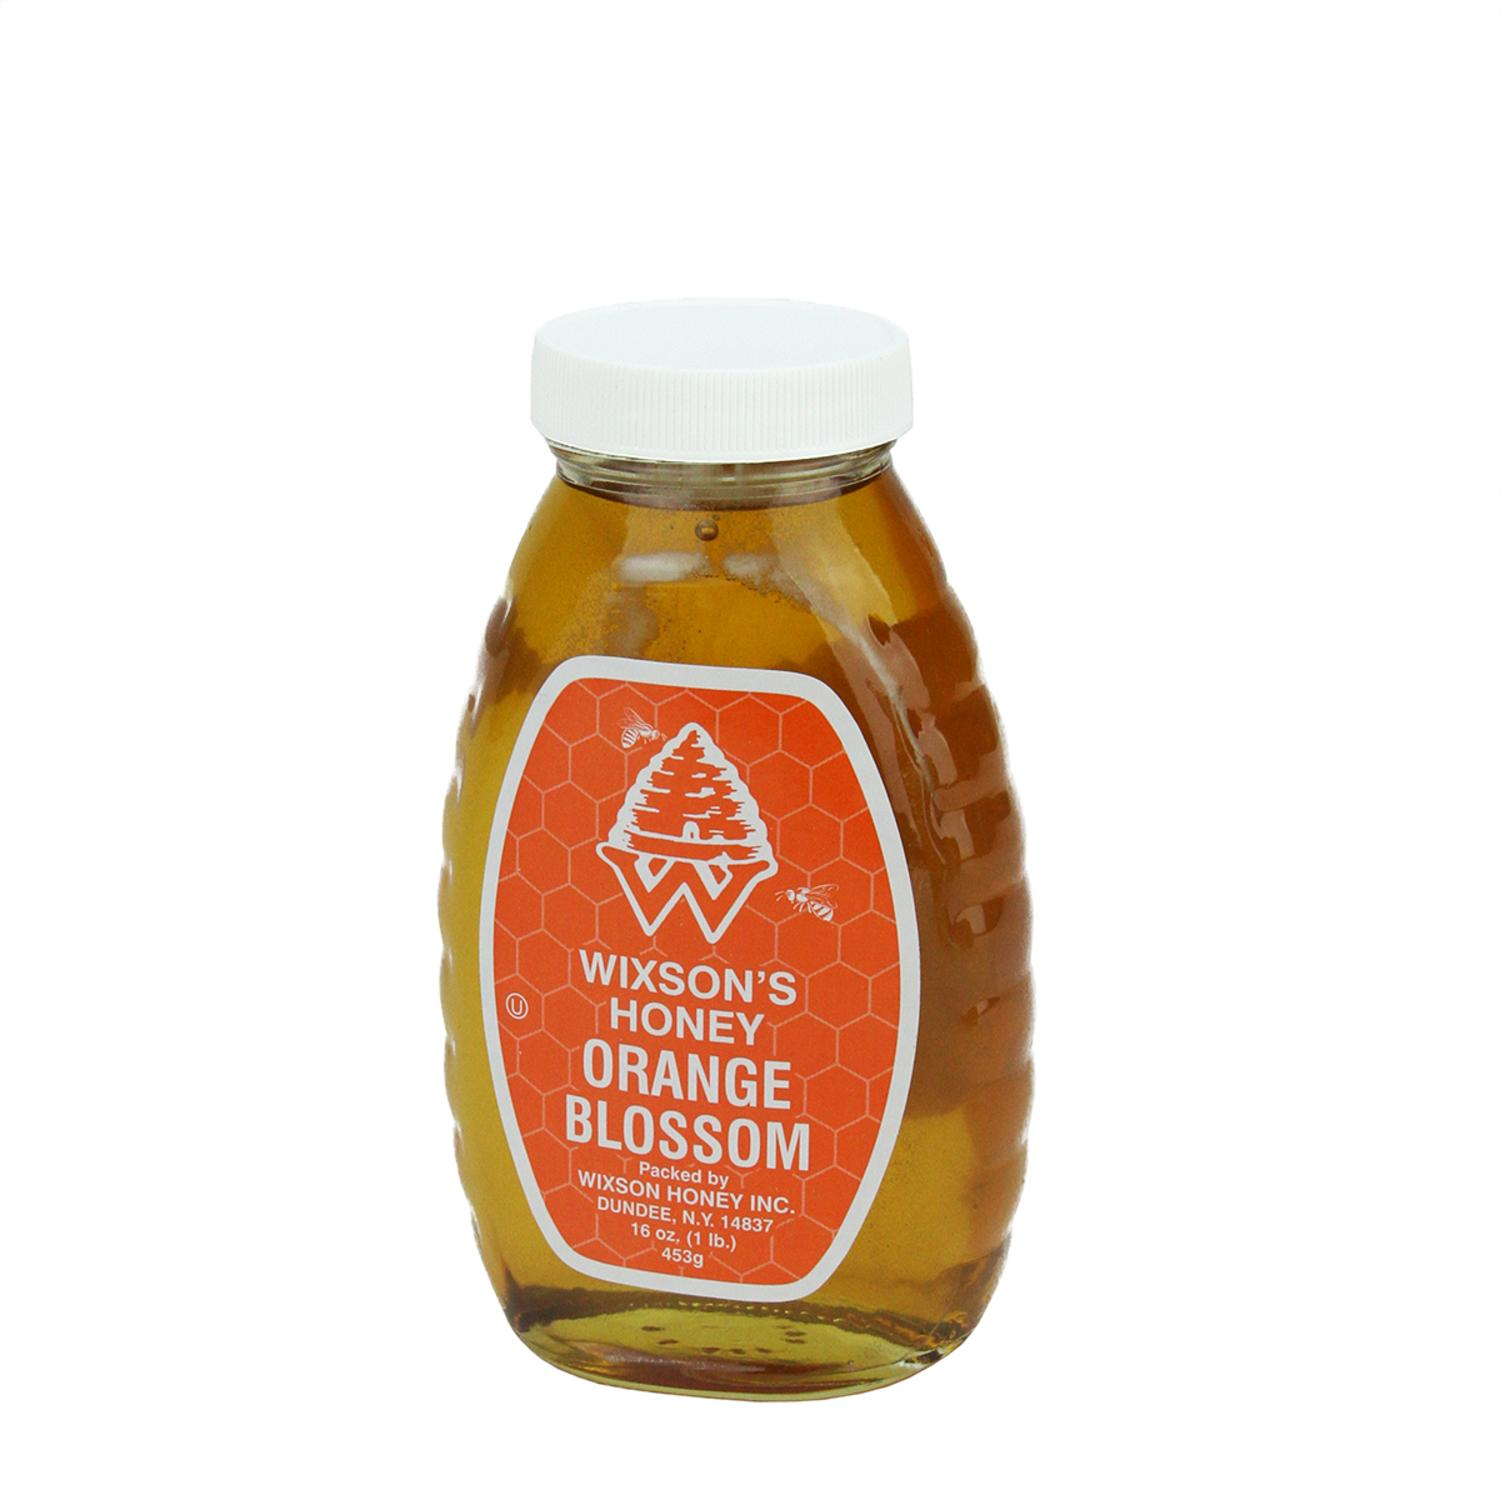 1 Pound of WNY's Wixson's Orange Blosson Honey in Classic Glass Jar by Wixson's